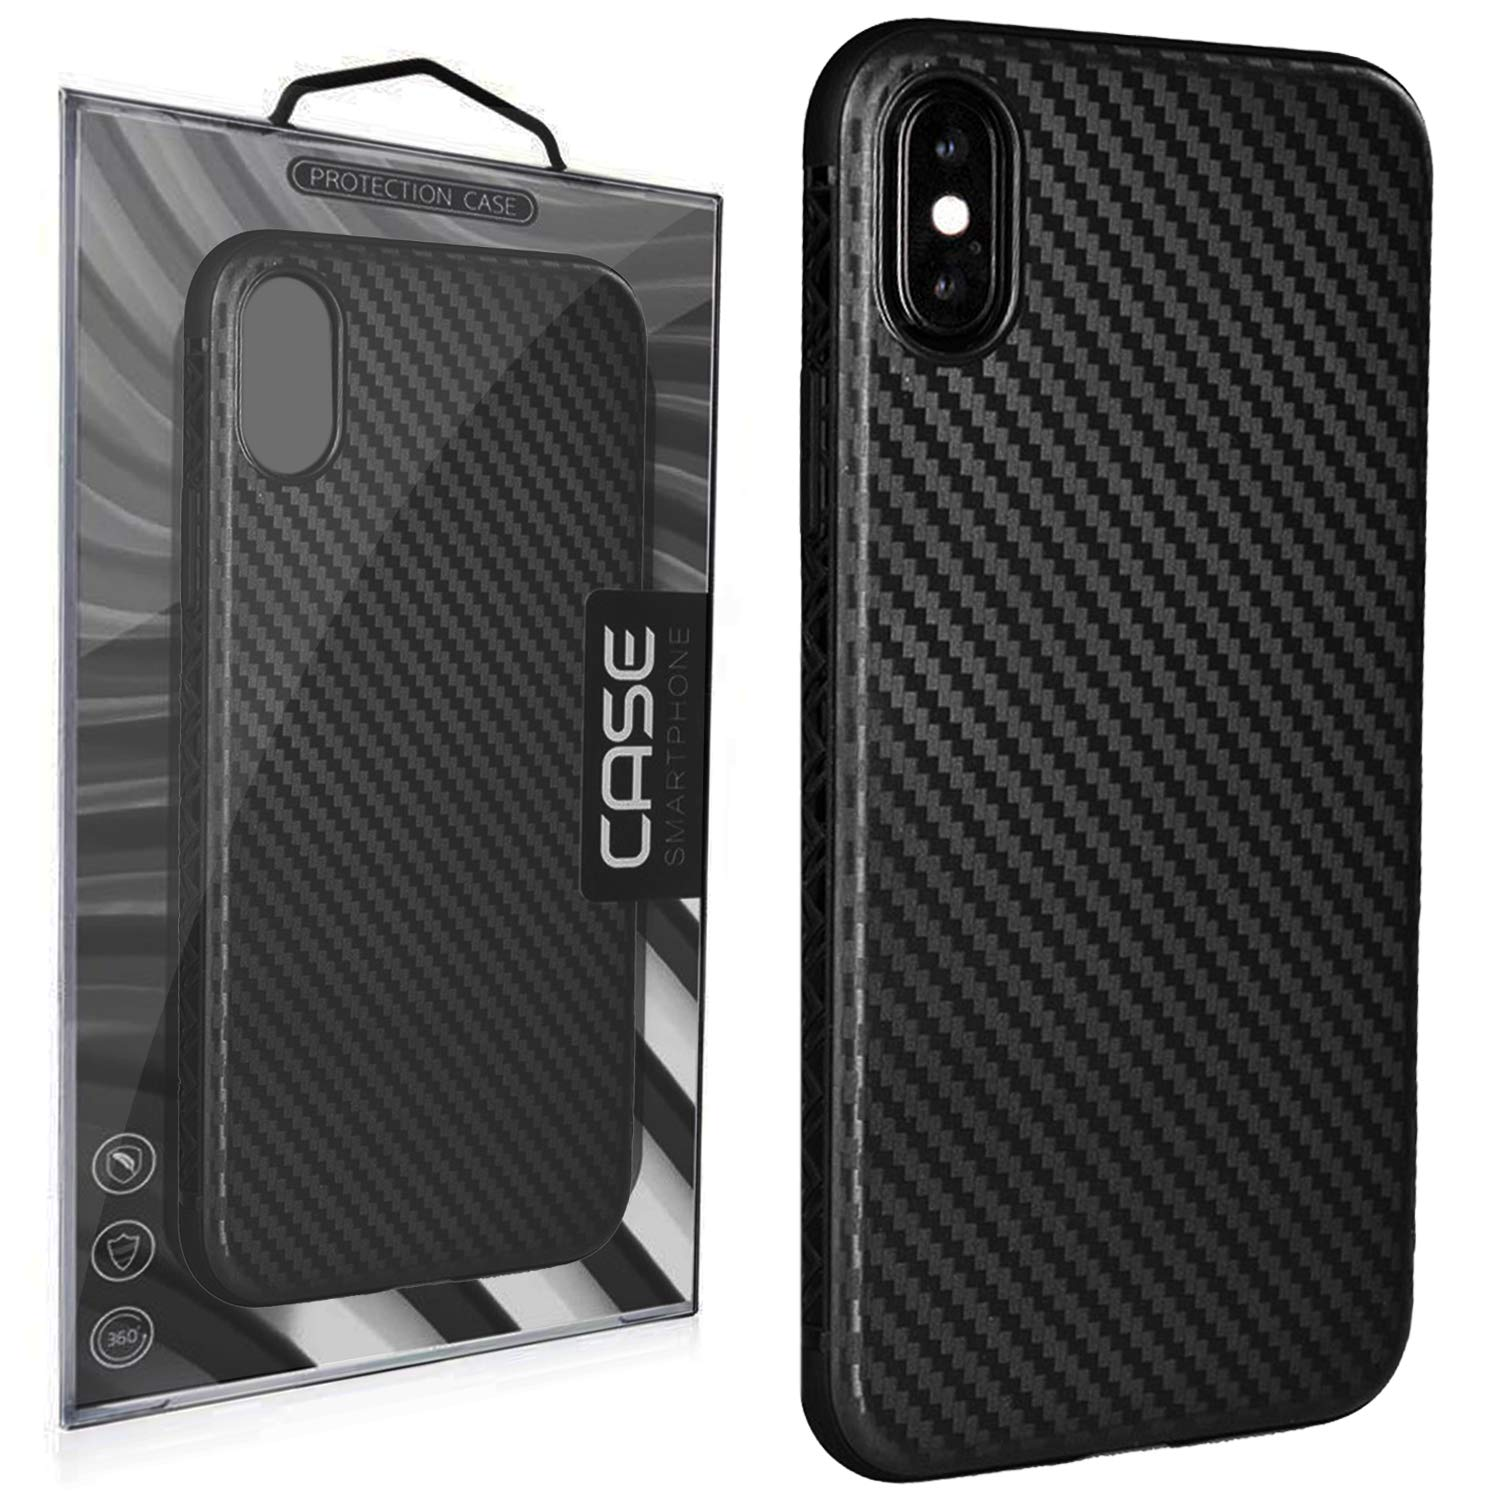 Carbon Fiber Iphone Case >> Carbon Fiber Case For Iphone X And Xs By Project Zaurak Ultra Thin Slim Case Cover For Apple 5 8 Iphone 10 And 10s